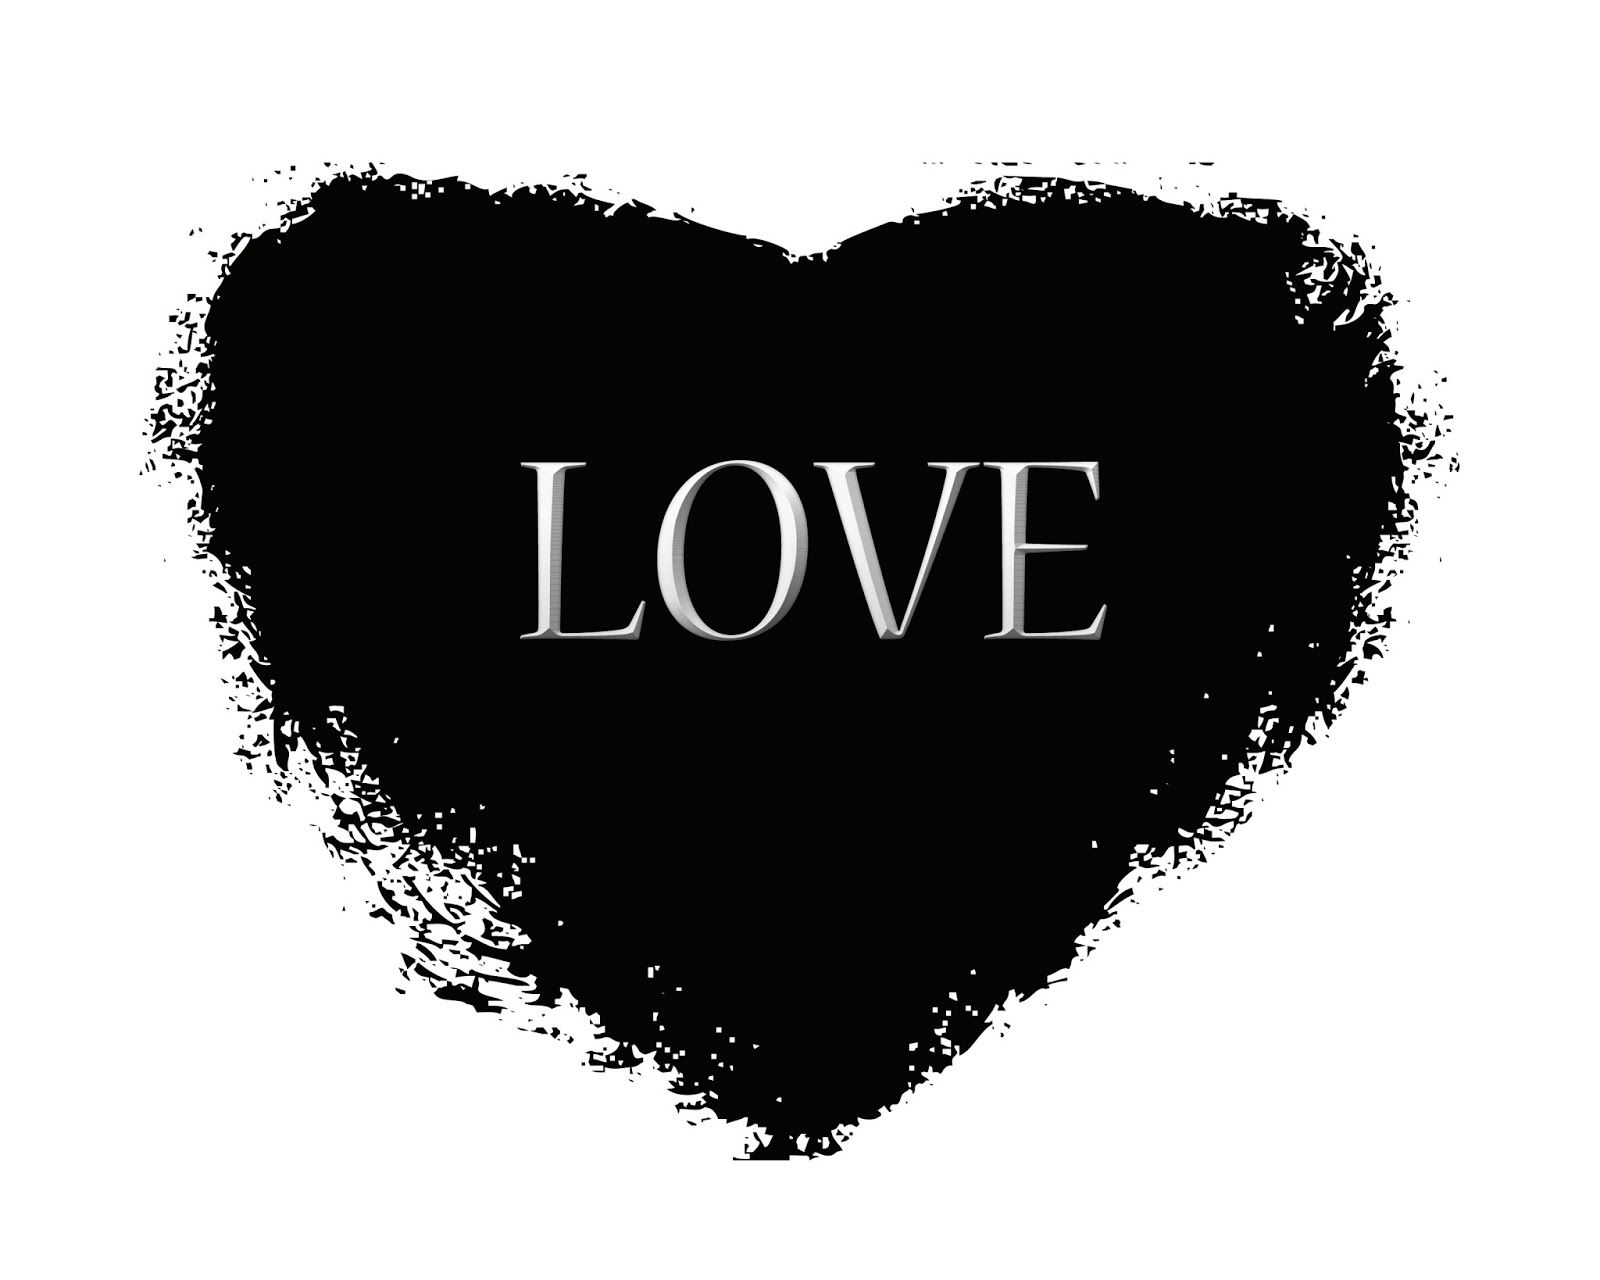 Printable Black And White Art 8X10 Black Heart With Love -1584